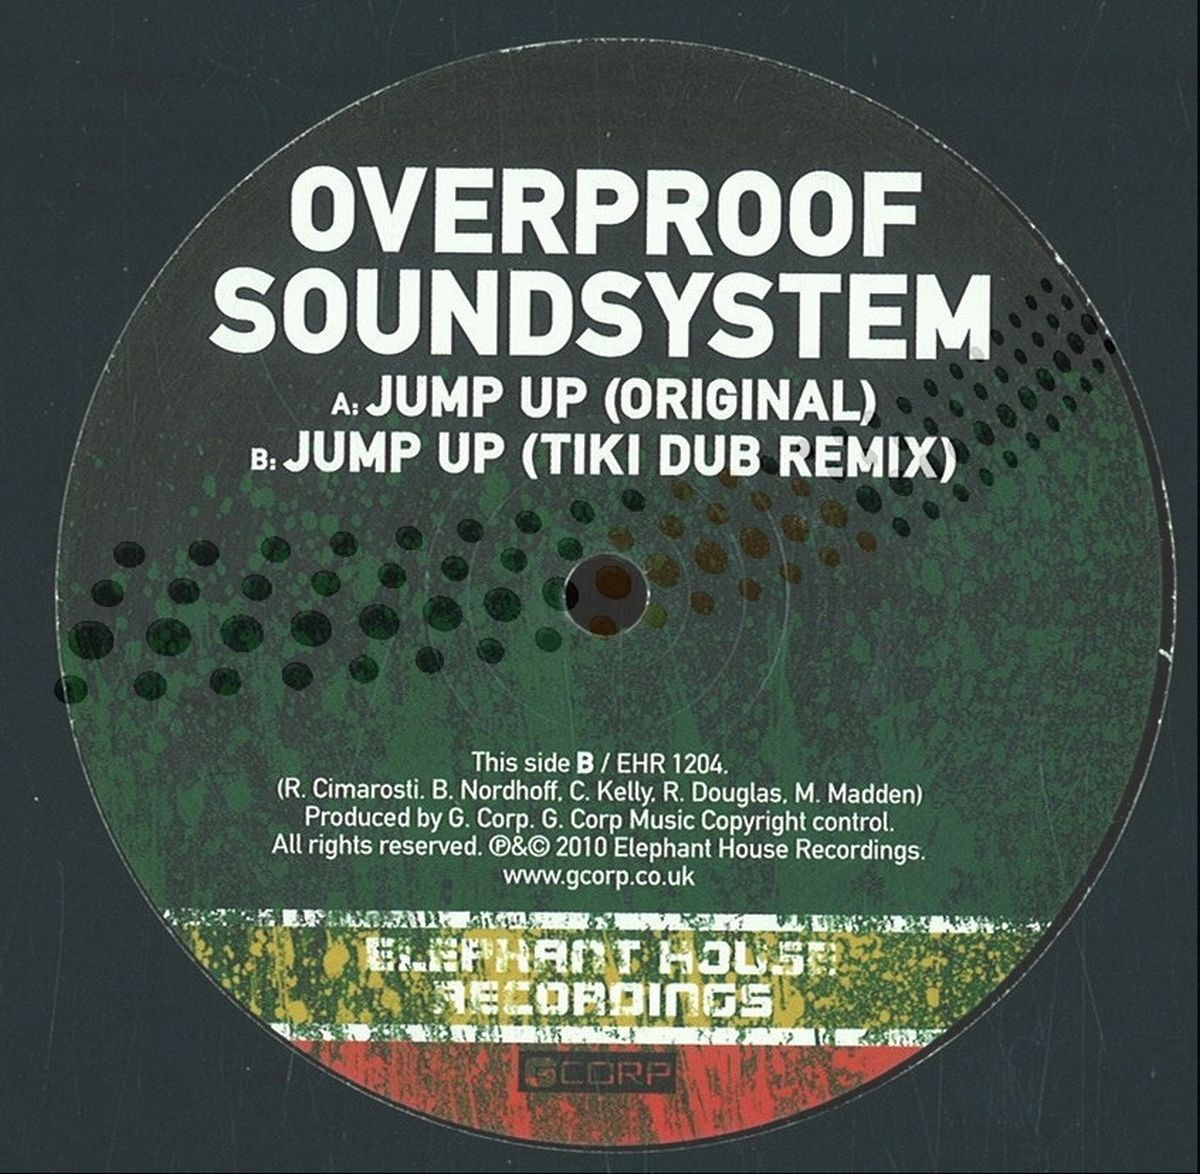 商品詳細 : 【中古・USED】OVERPROOF SOUNDSYSTEM(12inch)KINGSTEP